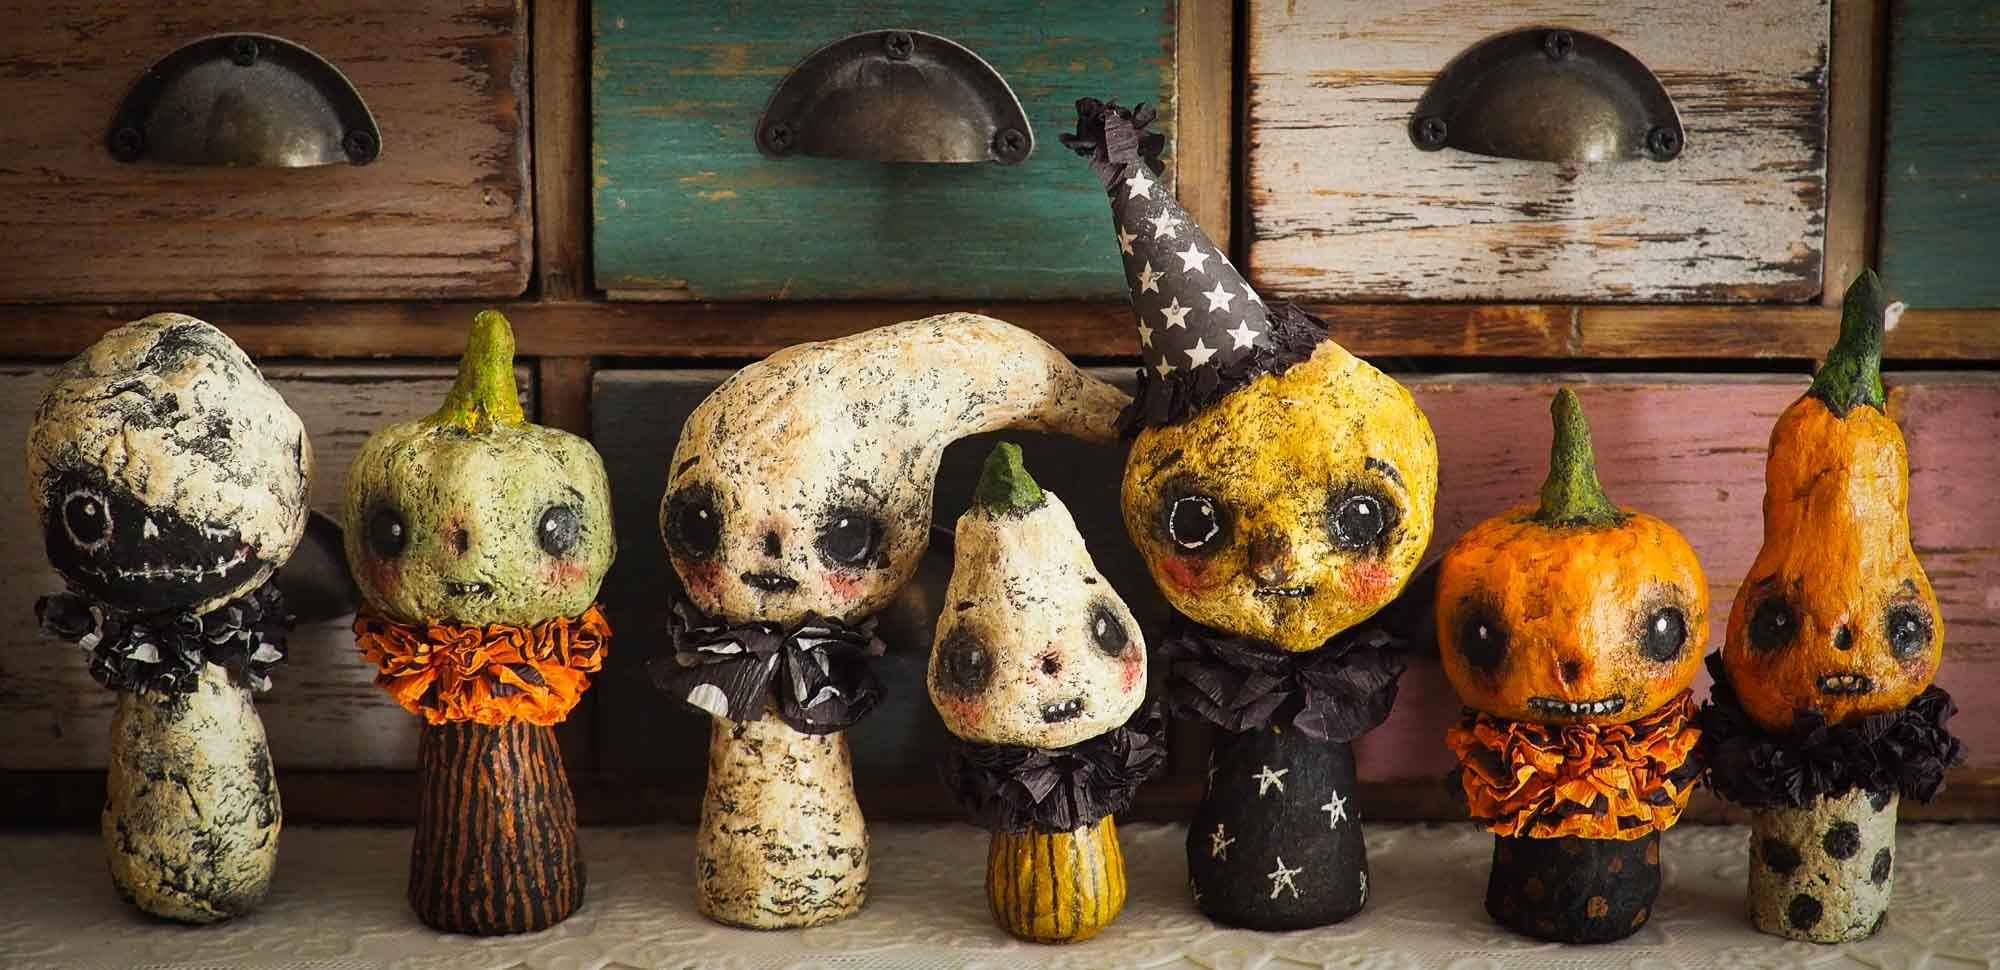 Danita uses organic spun cotton to create an adorable kawaii kokeshi handmade mini art doll for Halloween Decor. Decorate your home with an original decoration by Danita!